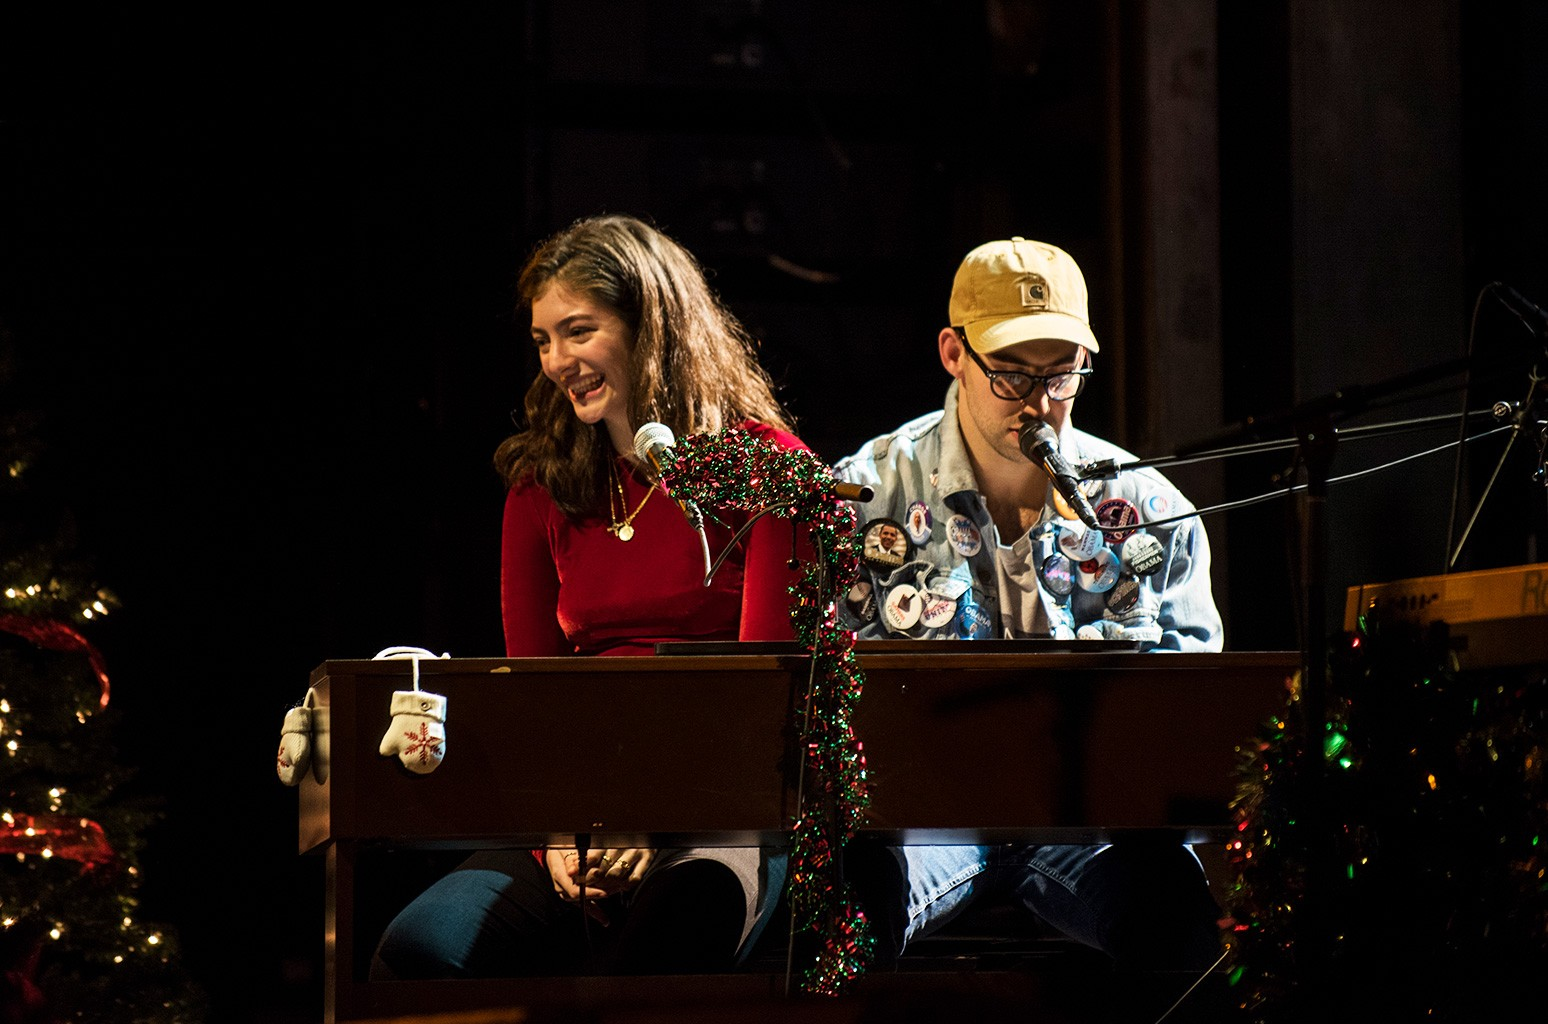 Lorde and Jack Antonoff perform during The Ally Coalition fundraiser on Dec. 12, 2016.